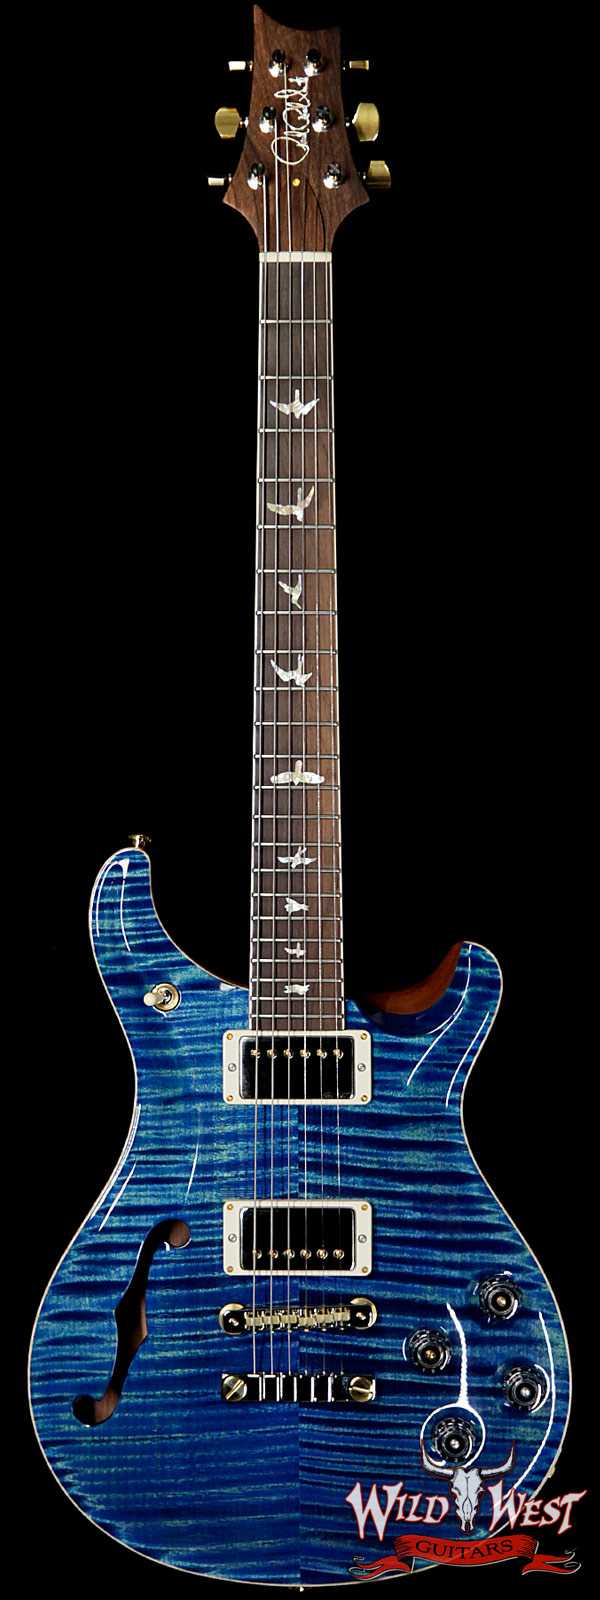 PRS Wild West Guitars 20th Anniversary Limited Run # 27 of 40 Wood Library Artist Package Semi-Hollow McCarty 594 River Blue